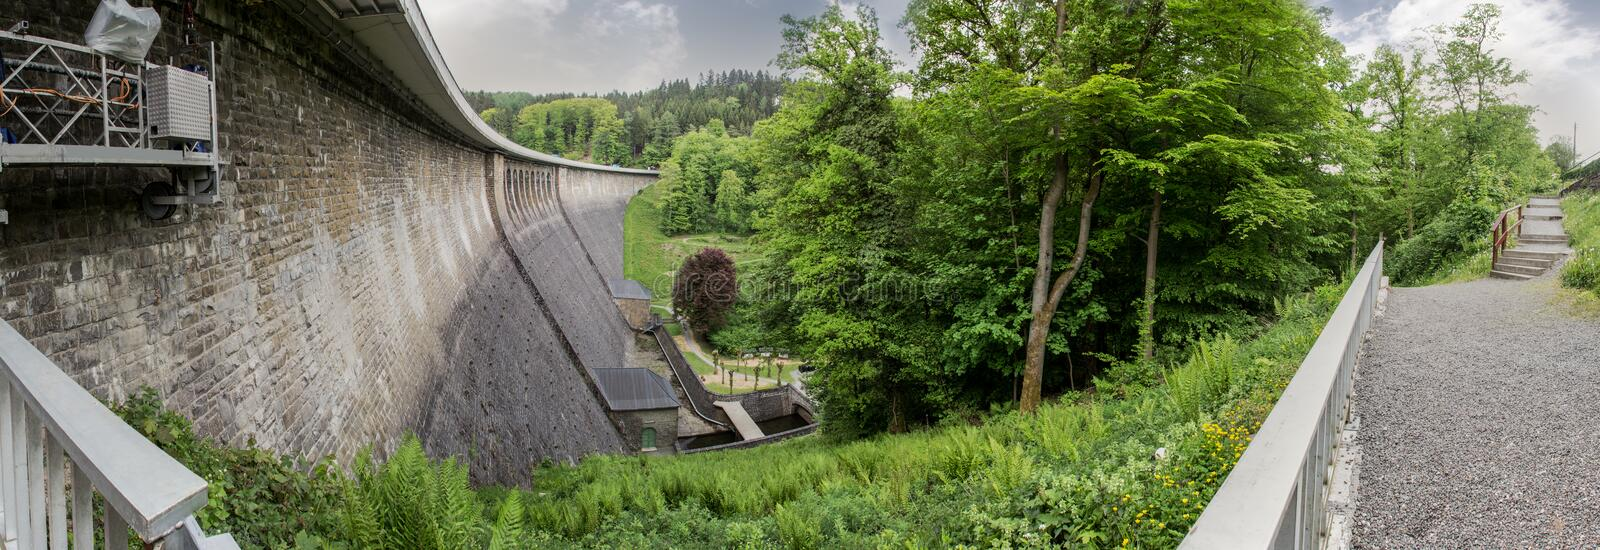 aggertalsperre dam germany high definition panorama royalty free stock photos